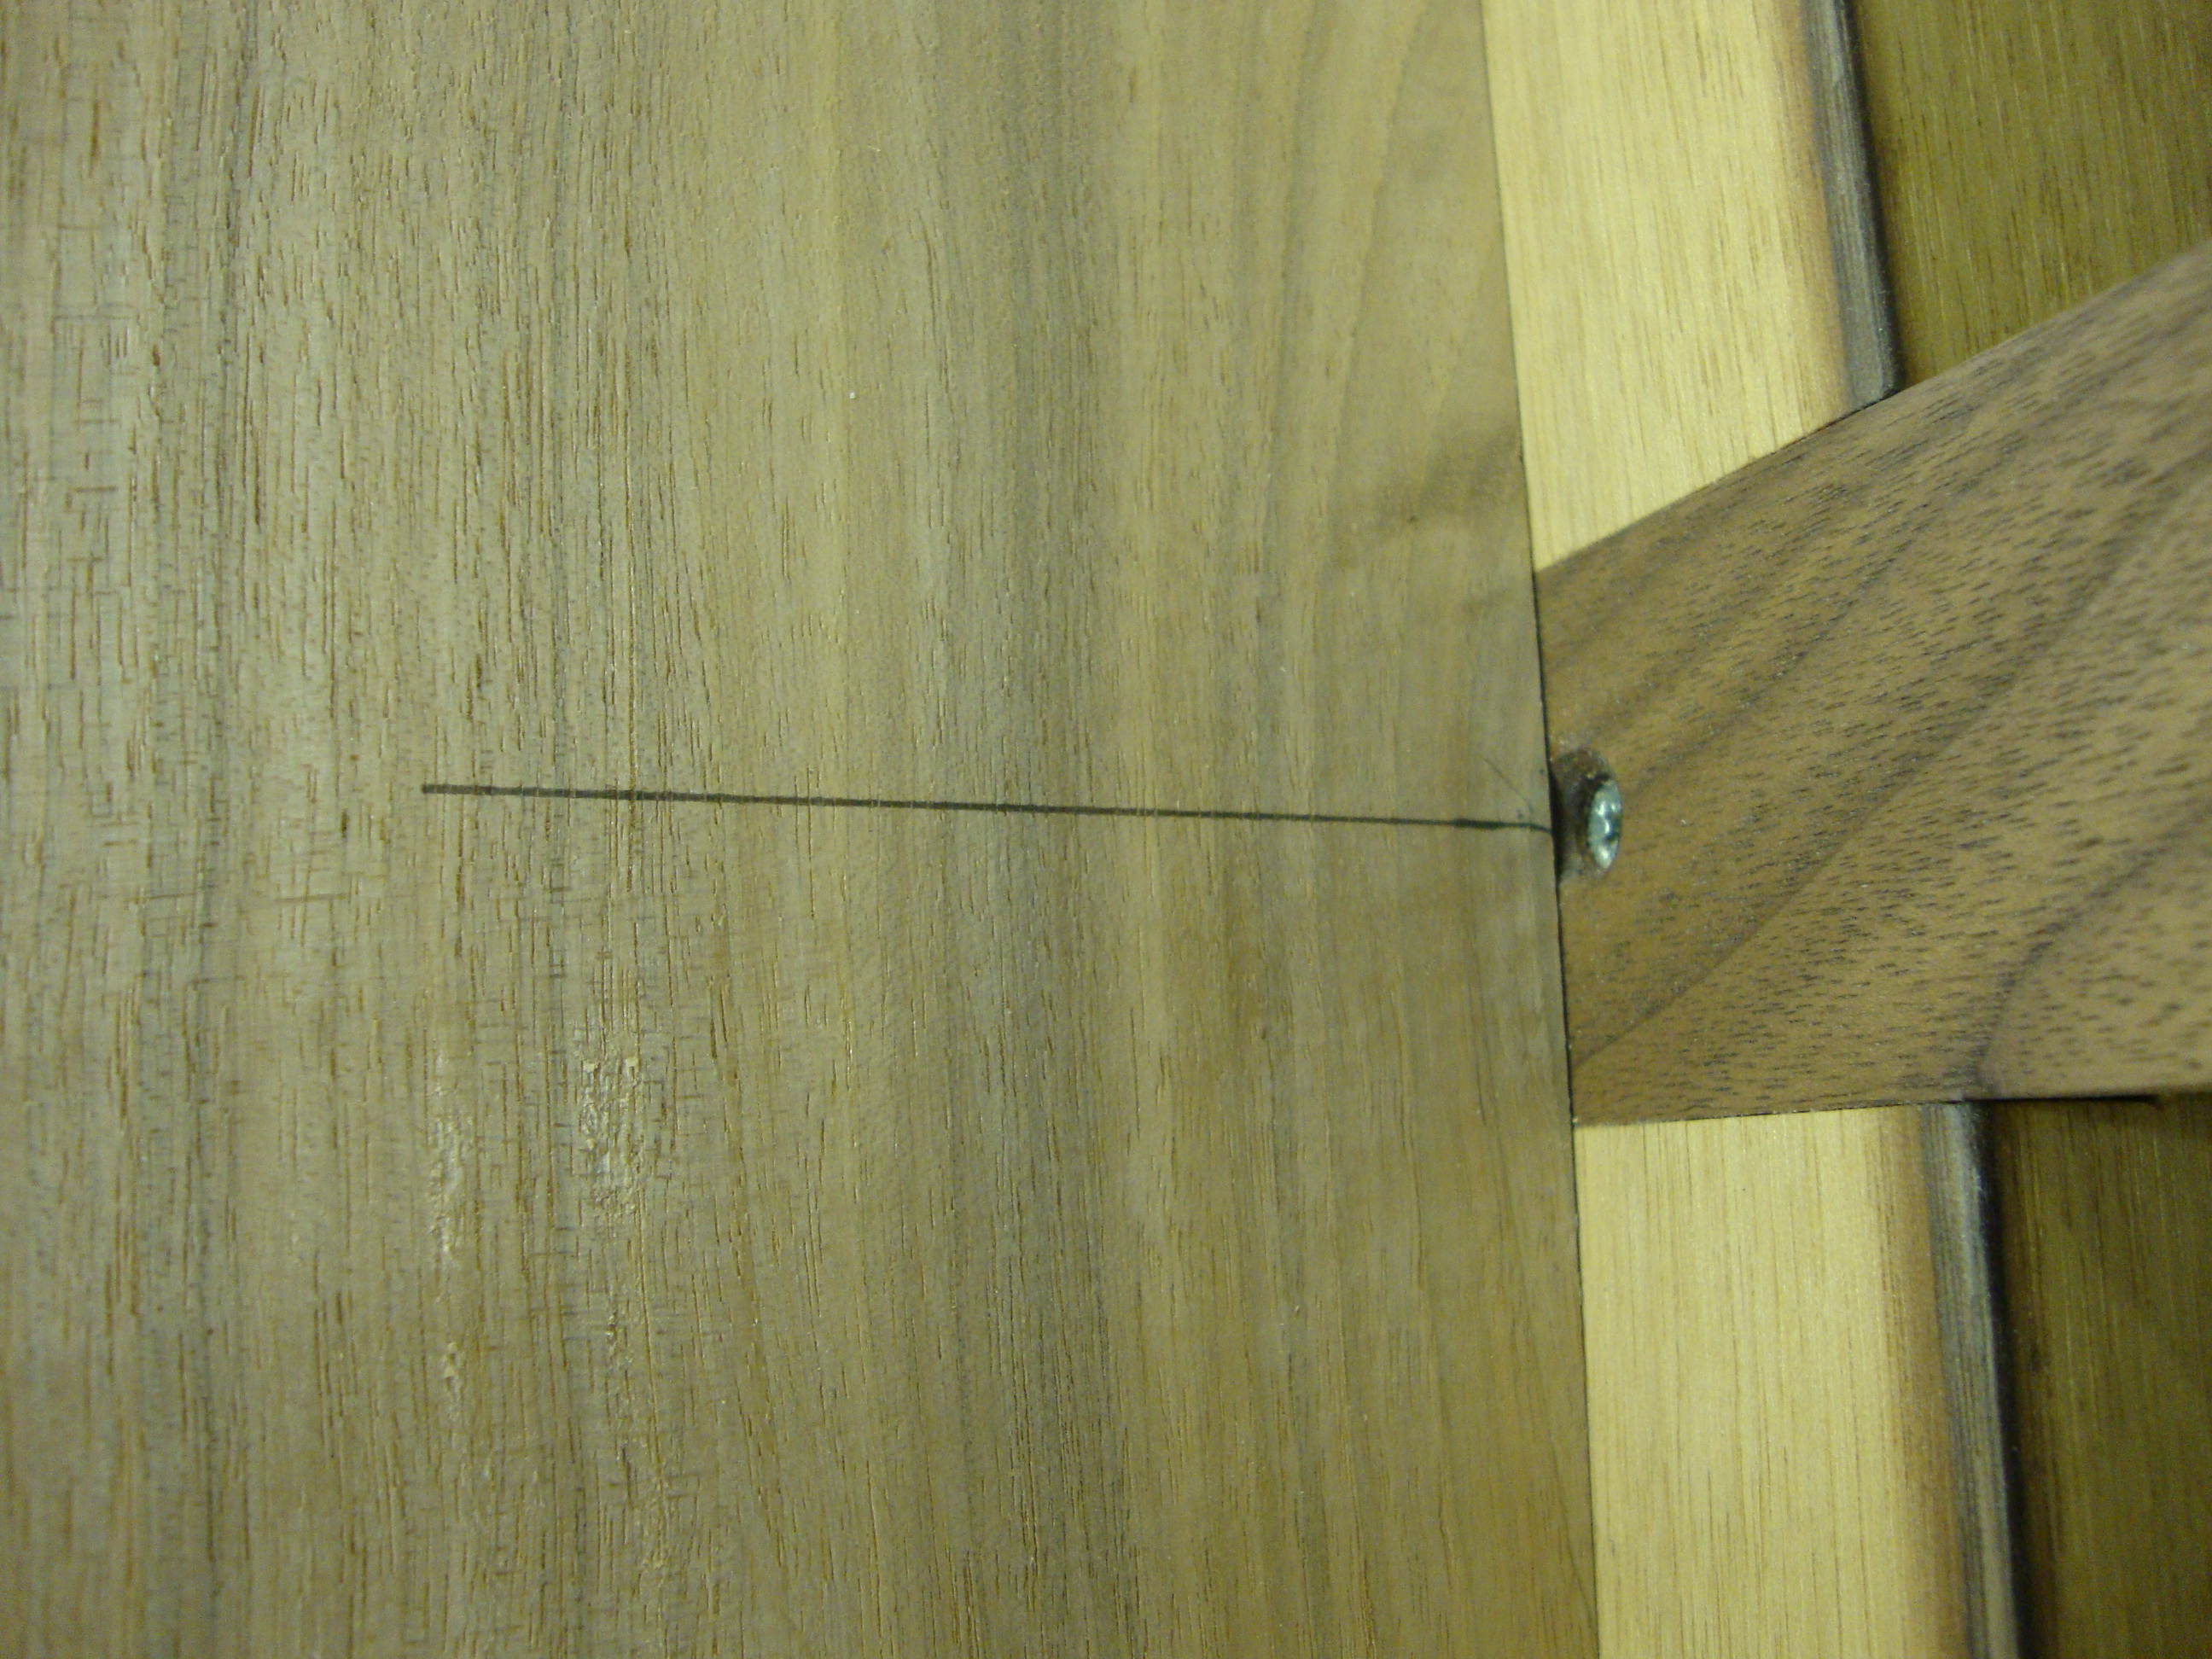 The cut line centered on the support arm on the table base.